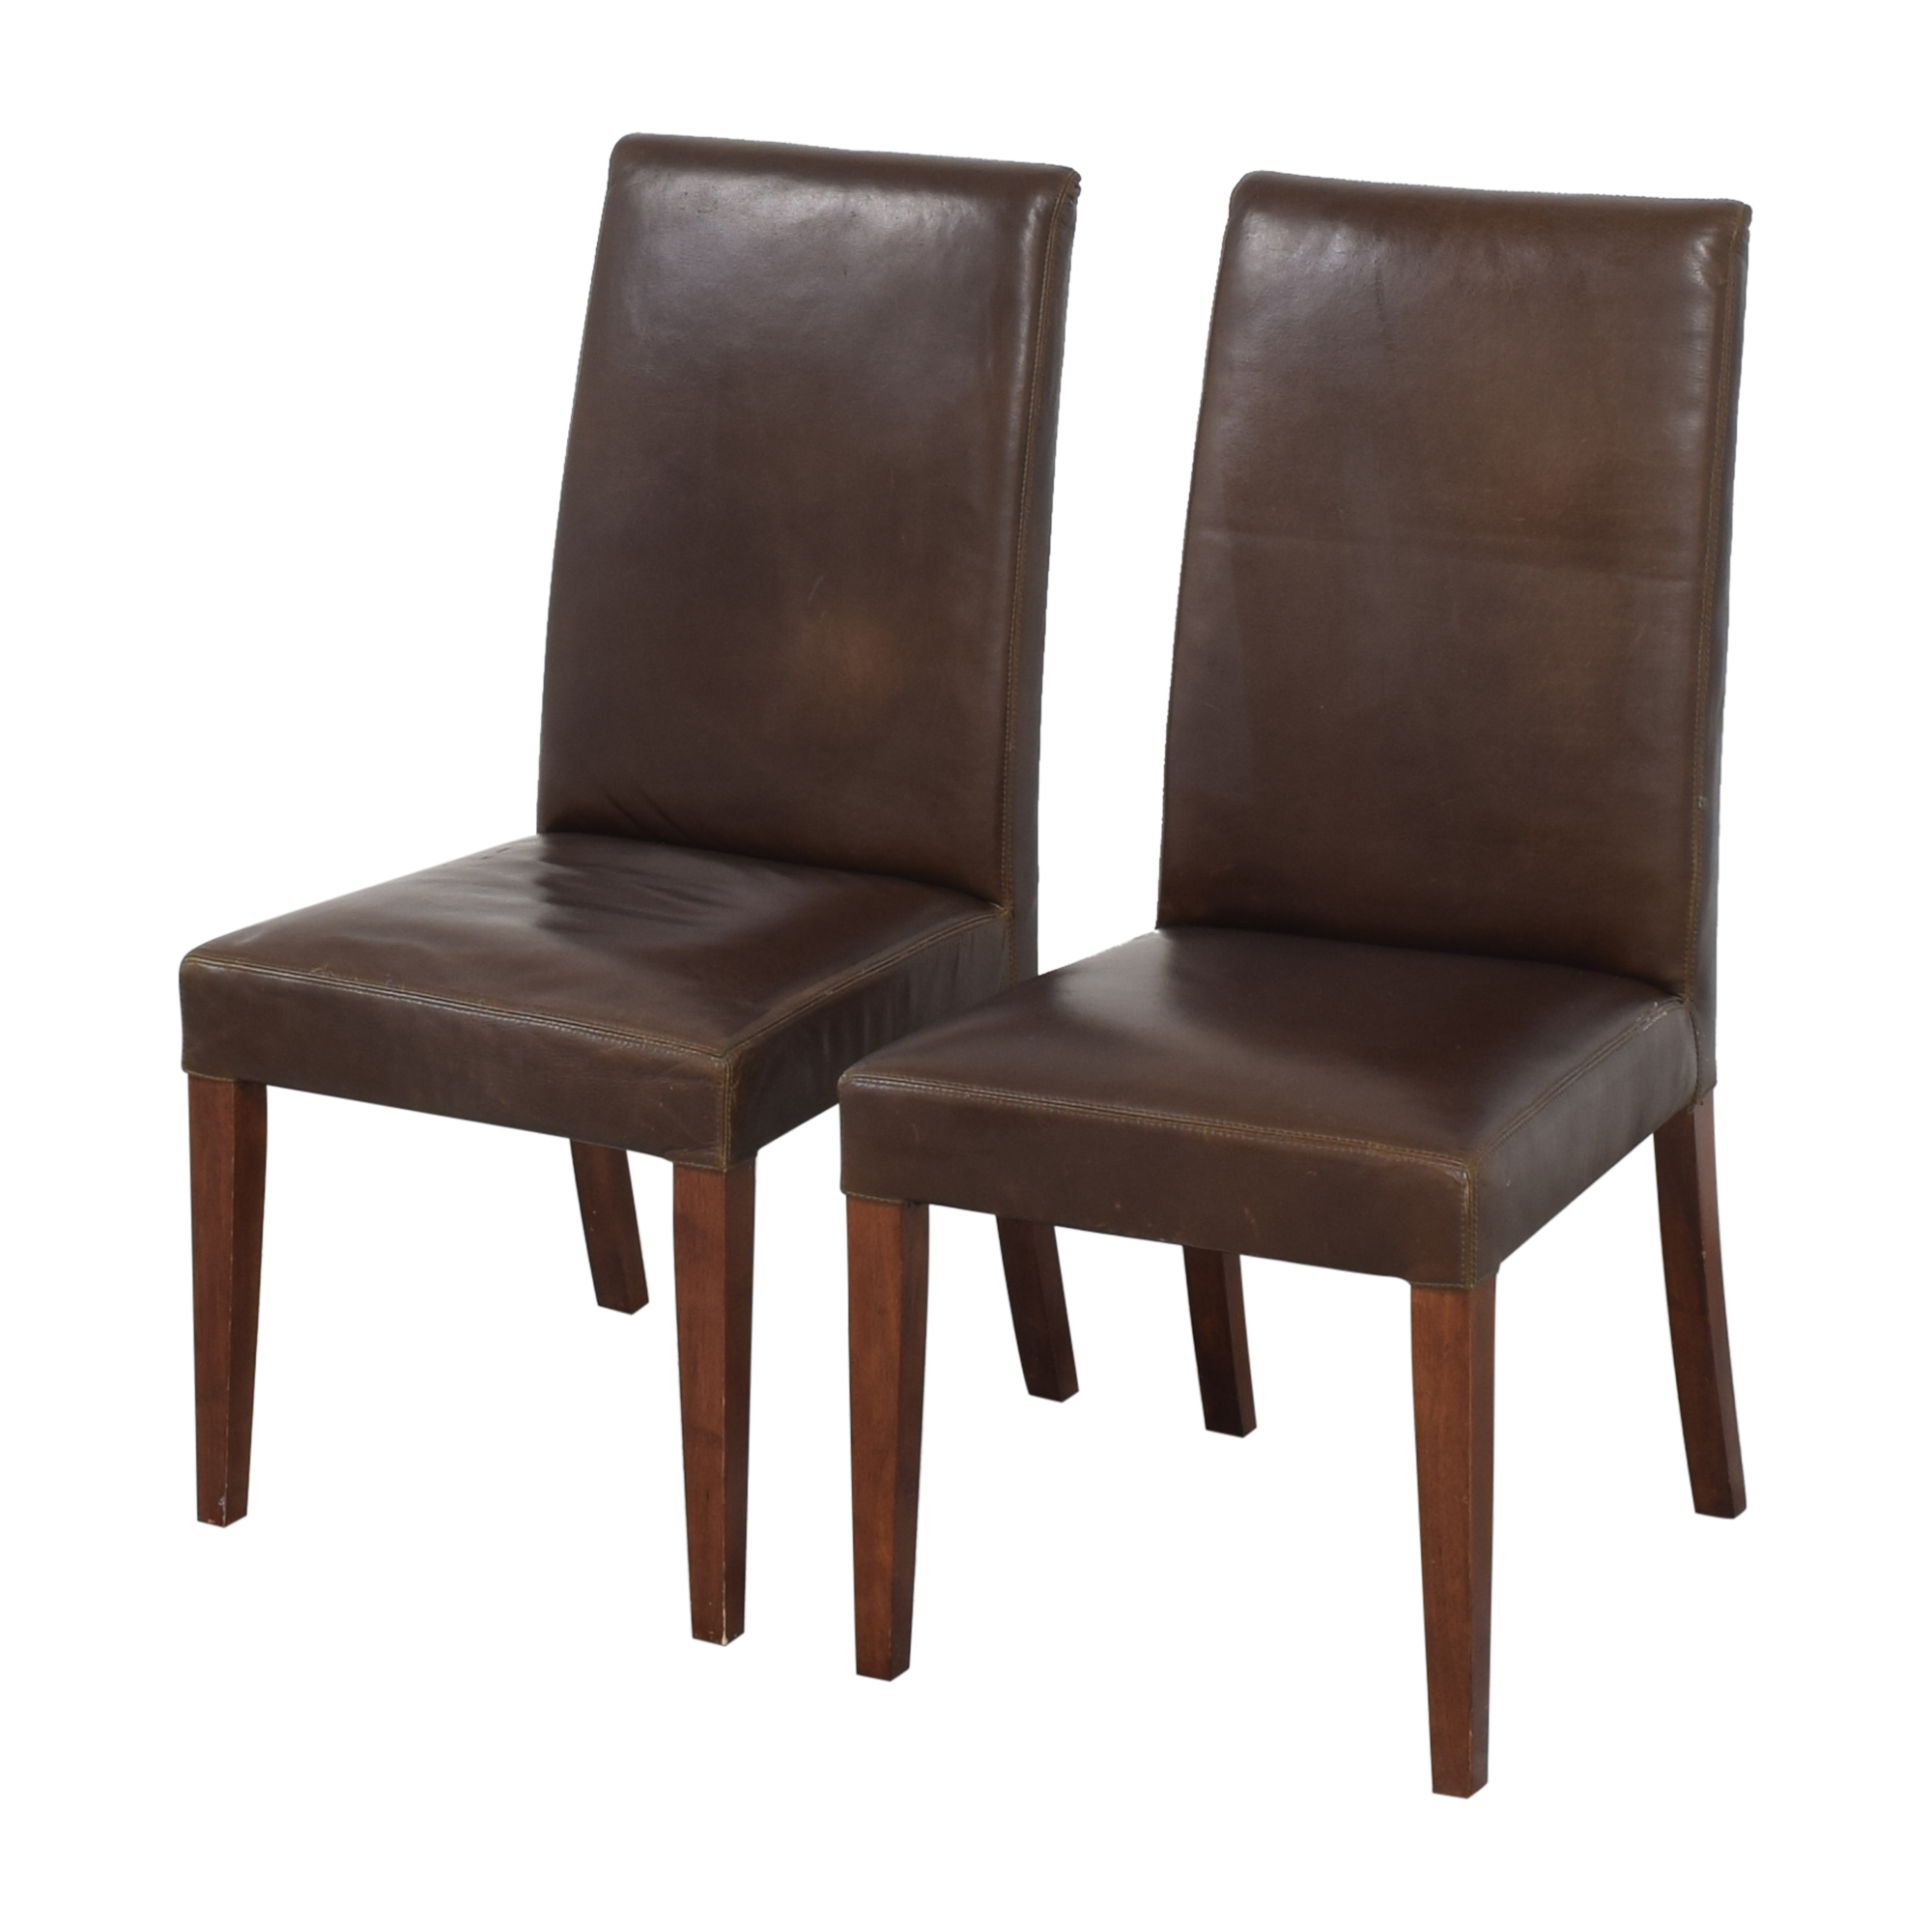 Pottery Barn Pottery Barn Grayson Dining Side Chairs ct